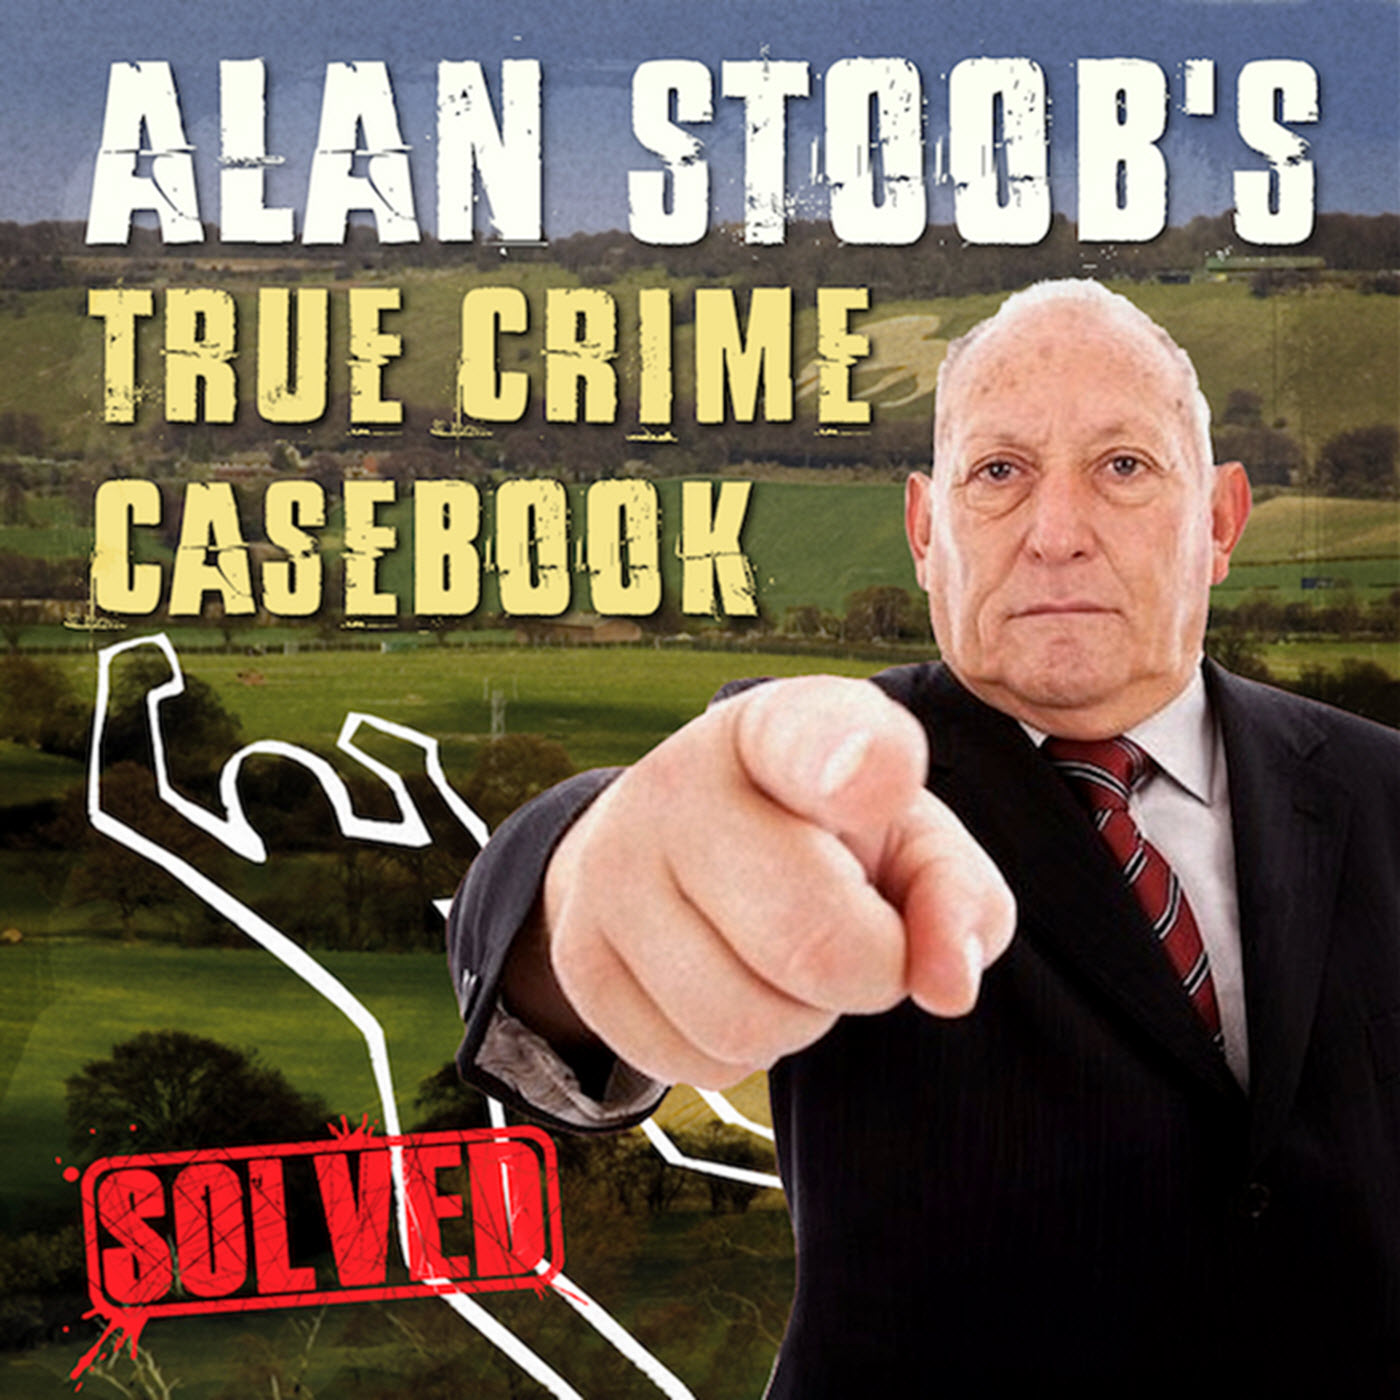 Alan Stoob's True Crime Casebook™